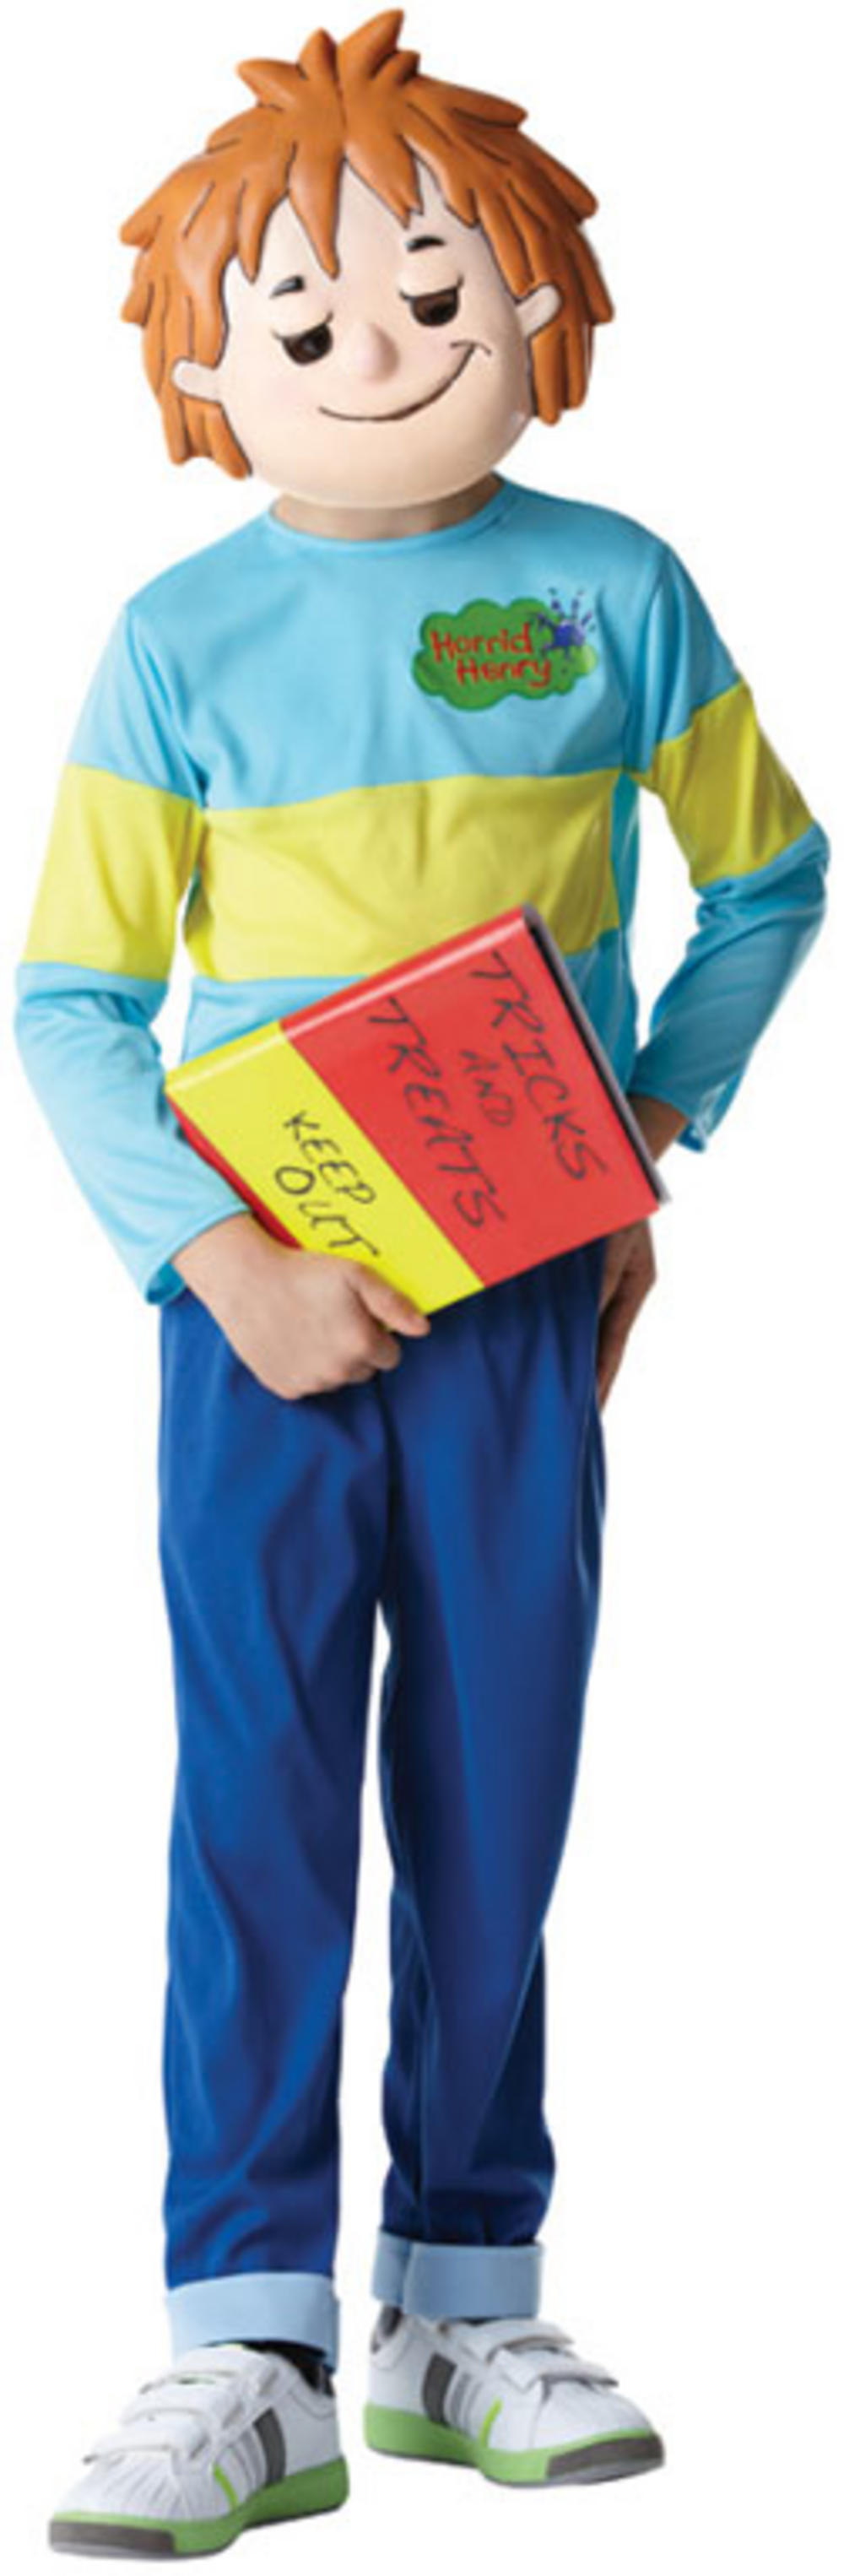 Kid's Horrid Henry Costume